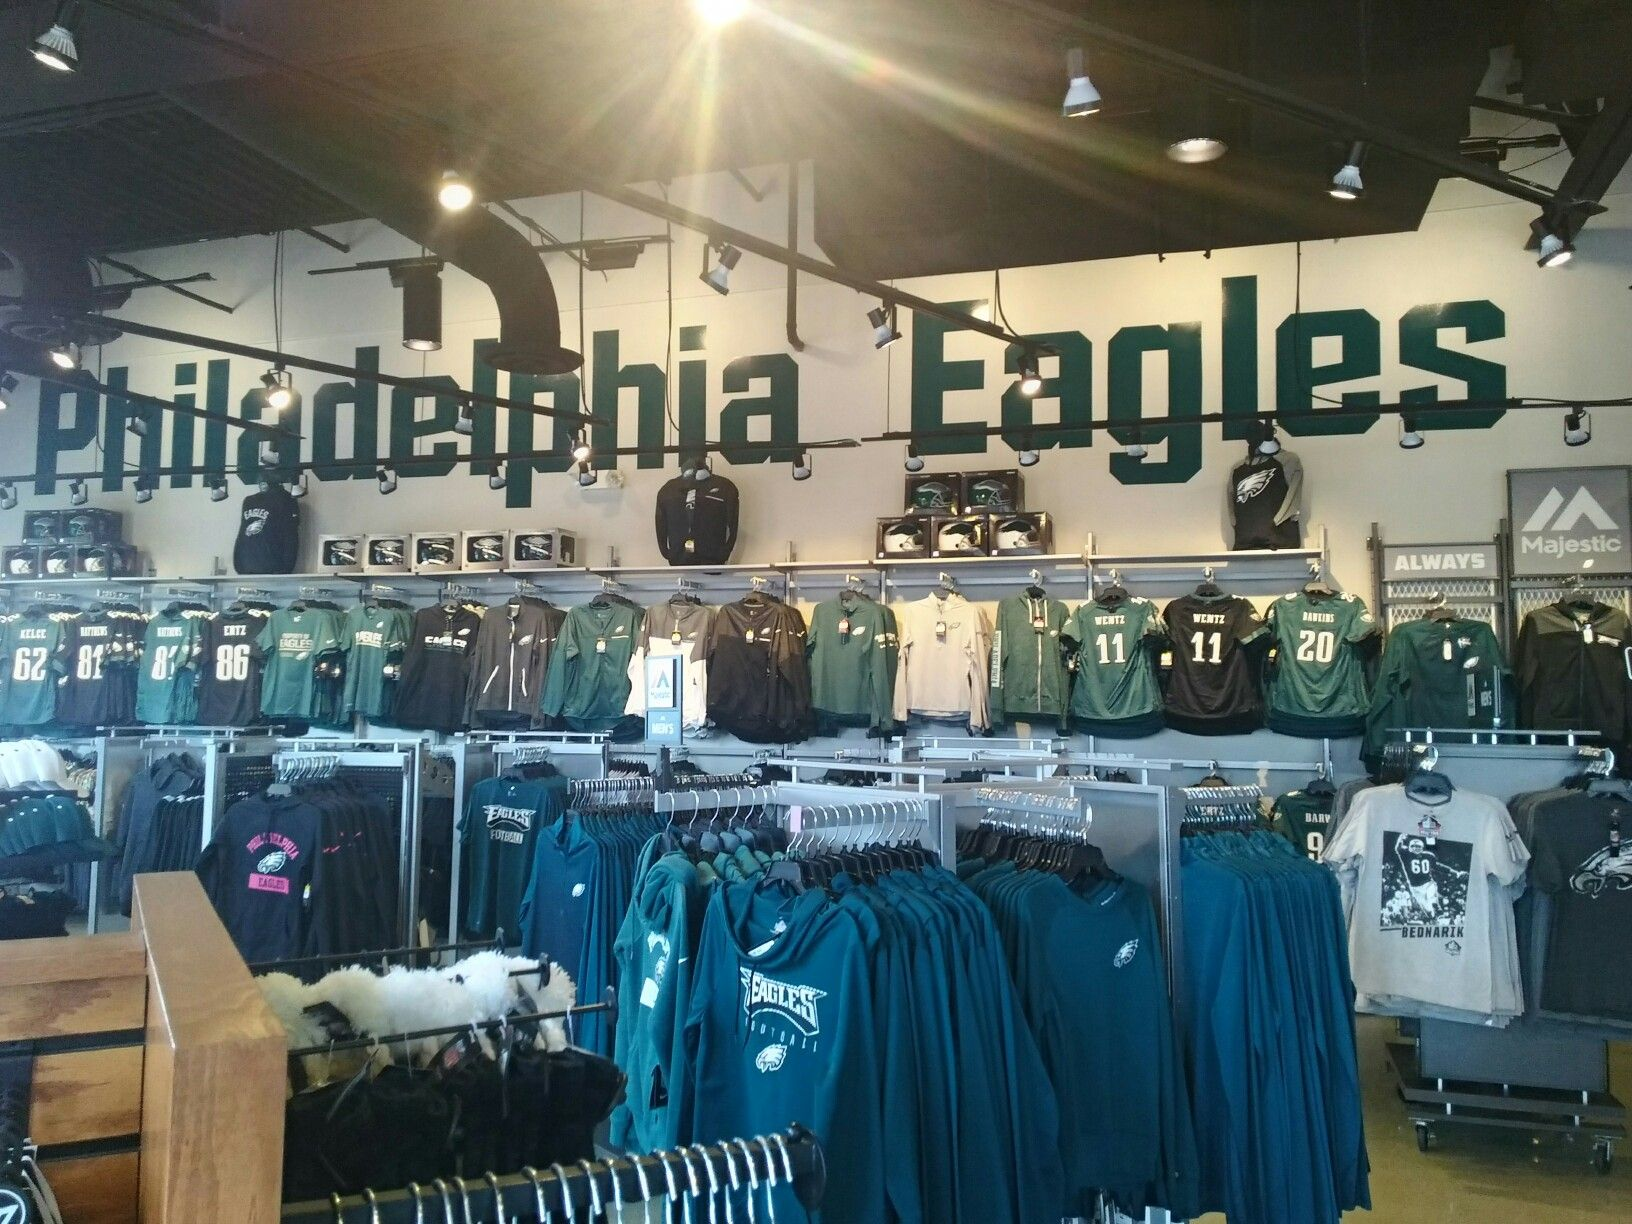 on sale 0e789 dffc4 I died and went to Heaven!!!! EAGLES pro shop cherry hill ...